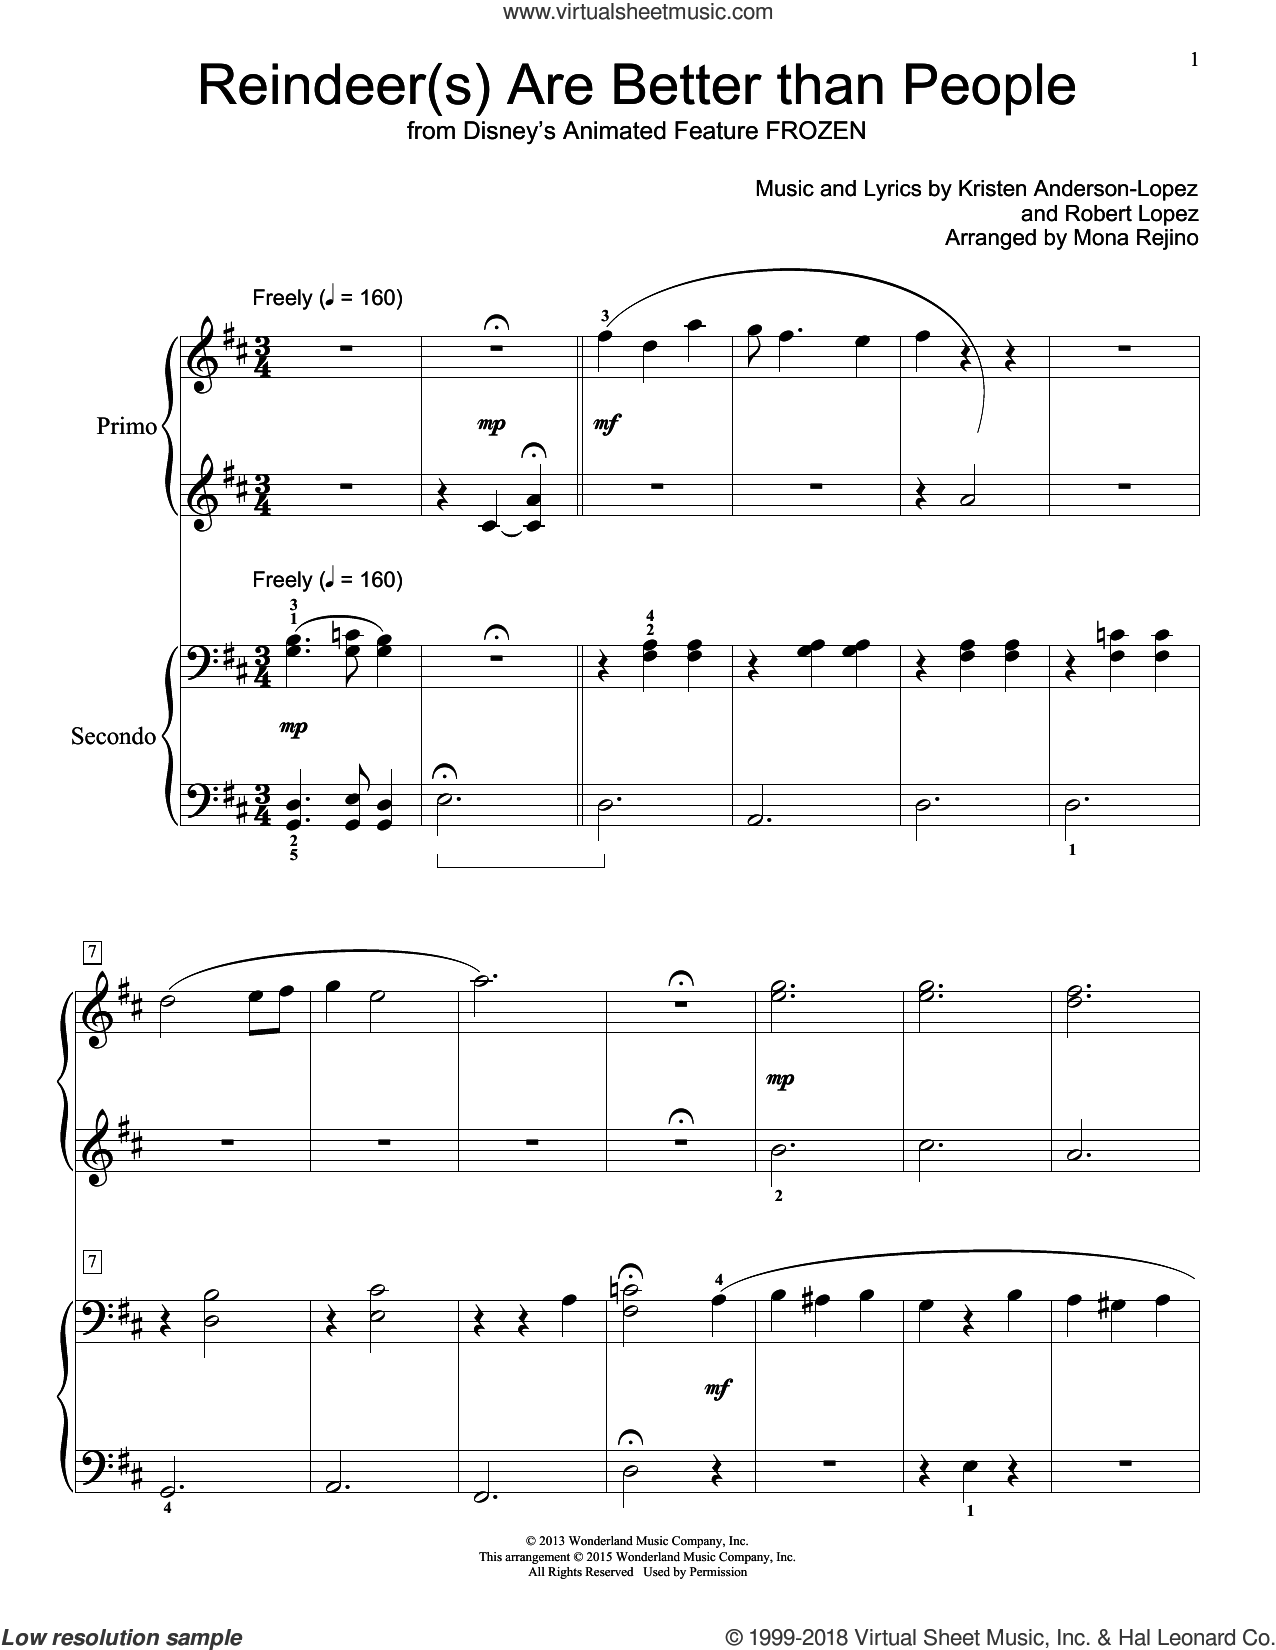 Reindeer(s) Are Better Than People sheet music for piano four hands (duets) by Robert Lopez